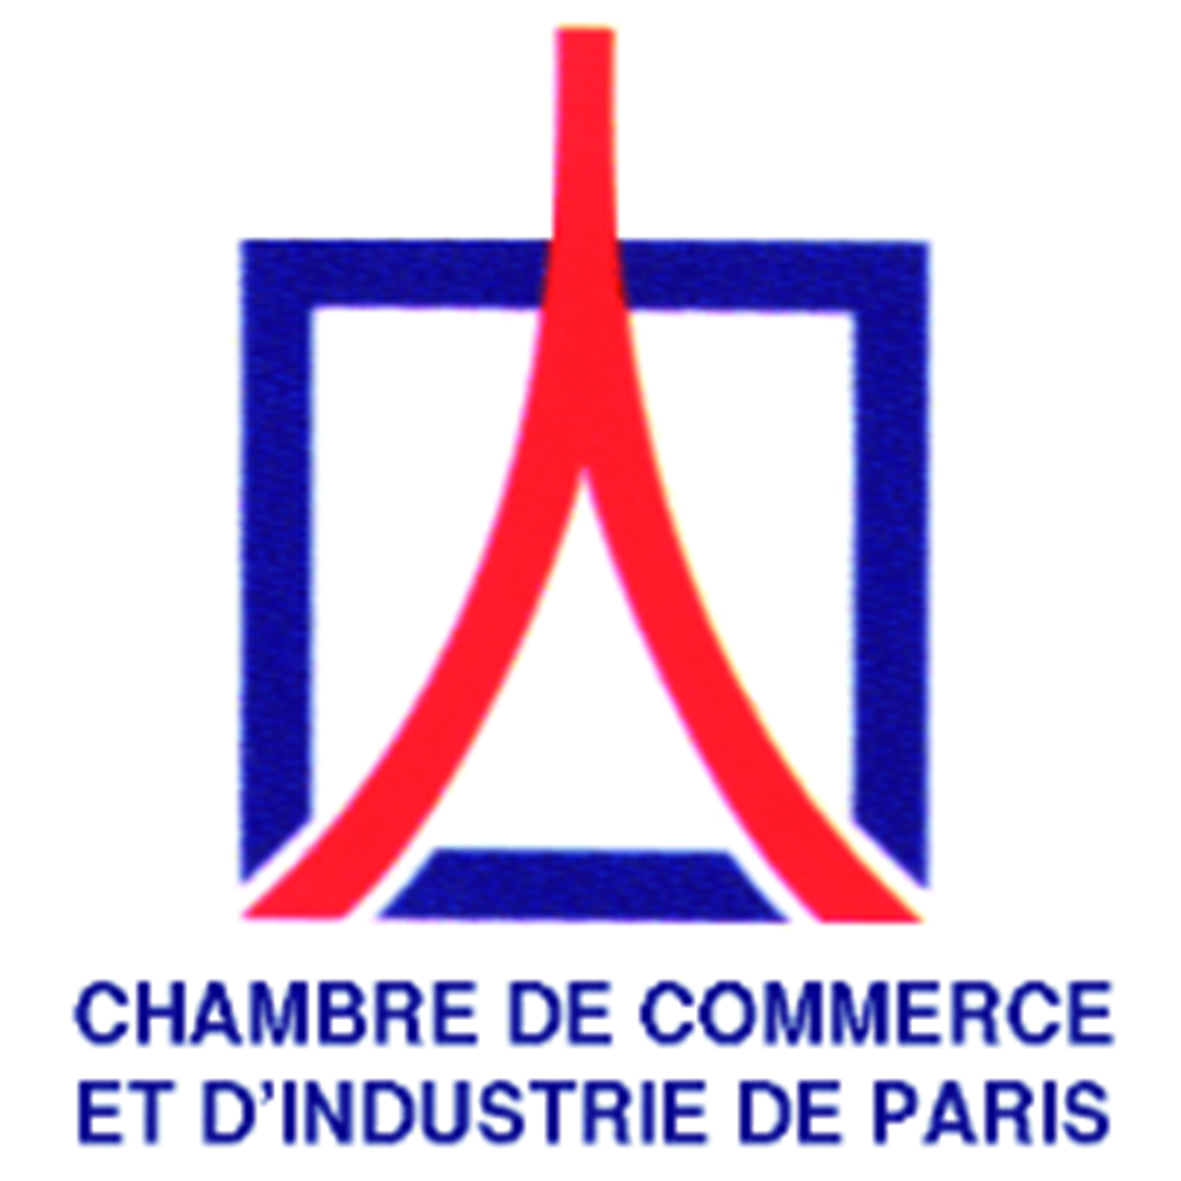 Logo chambre de commerce et d 39 industrie de paris le site for Chambre de commerce et d industrie de paris ccip